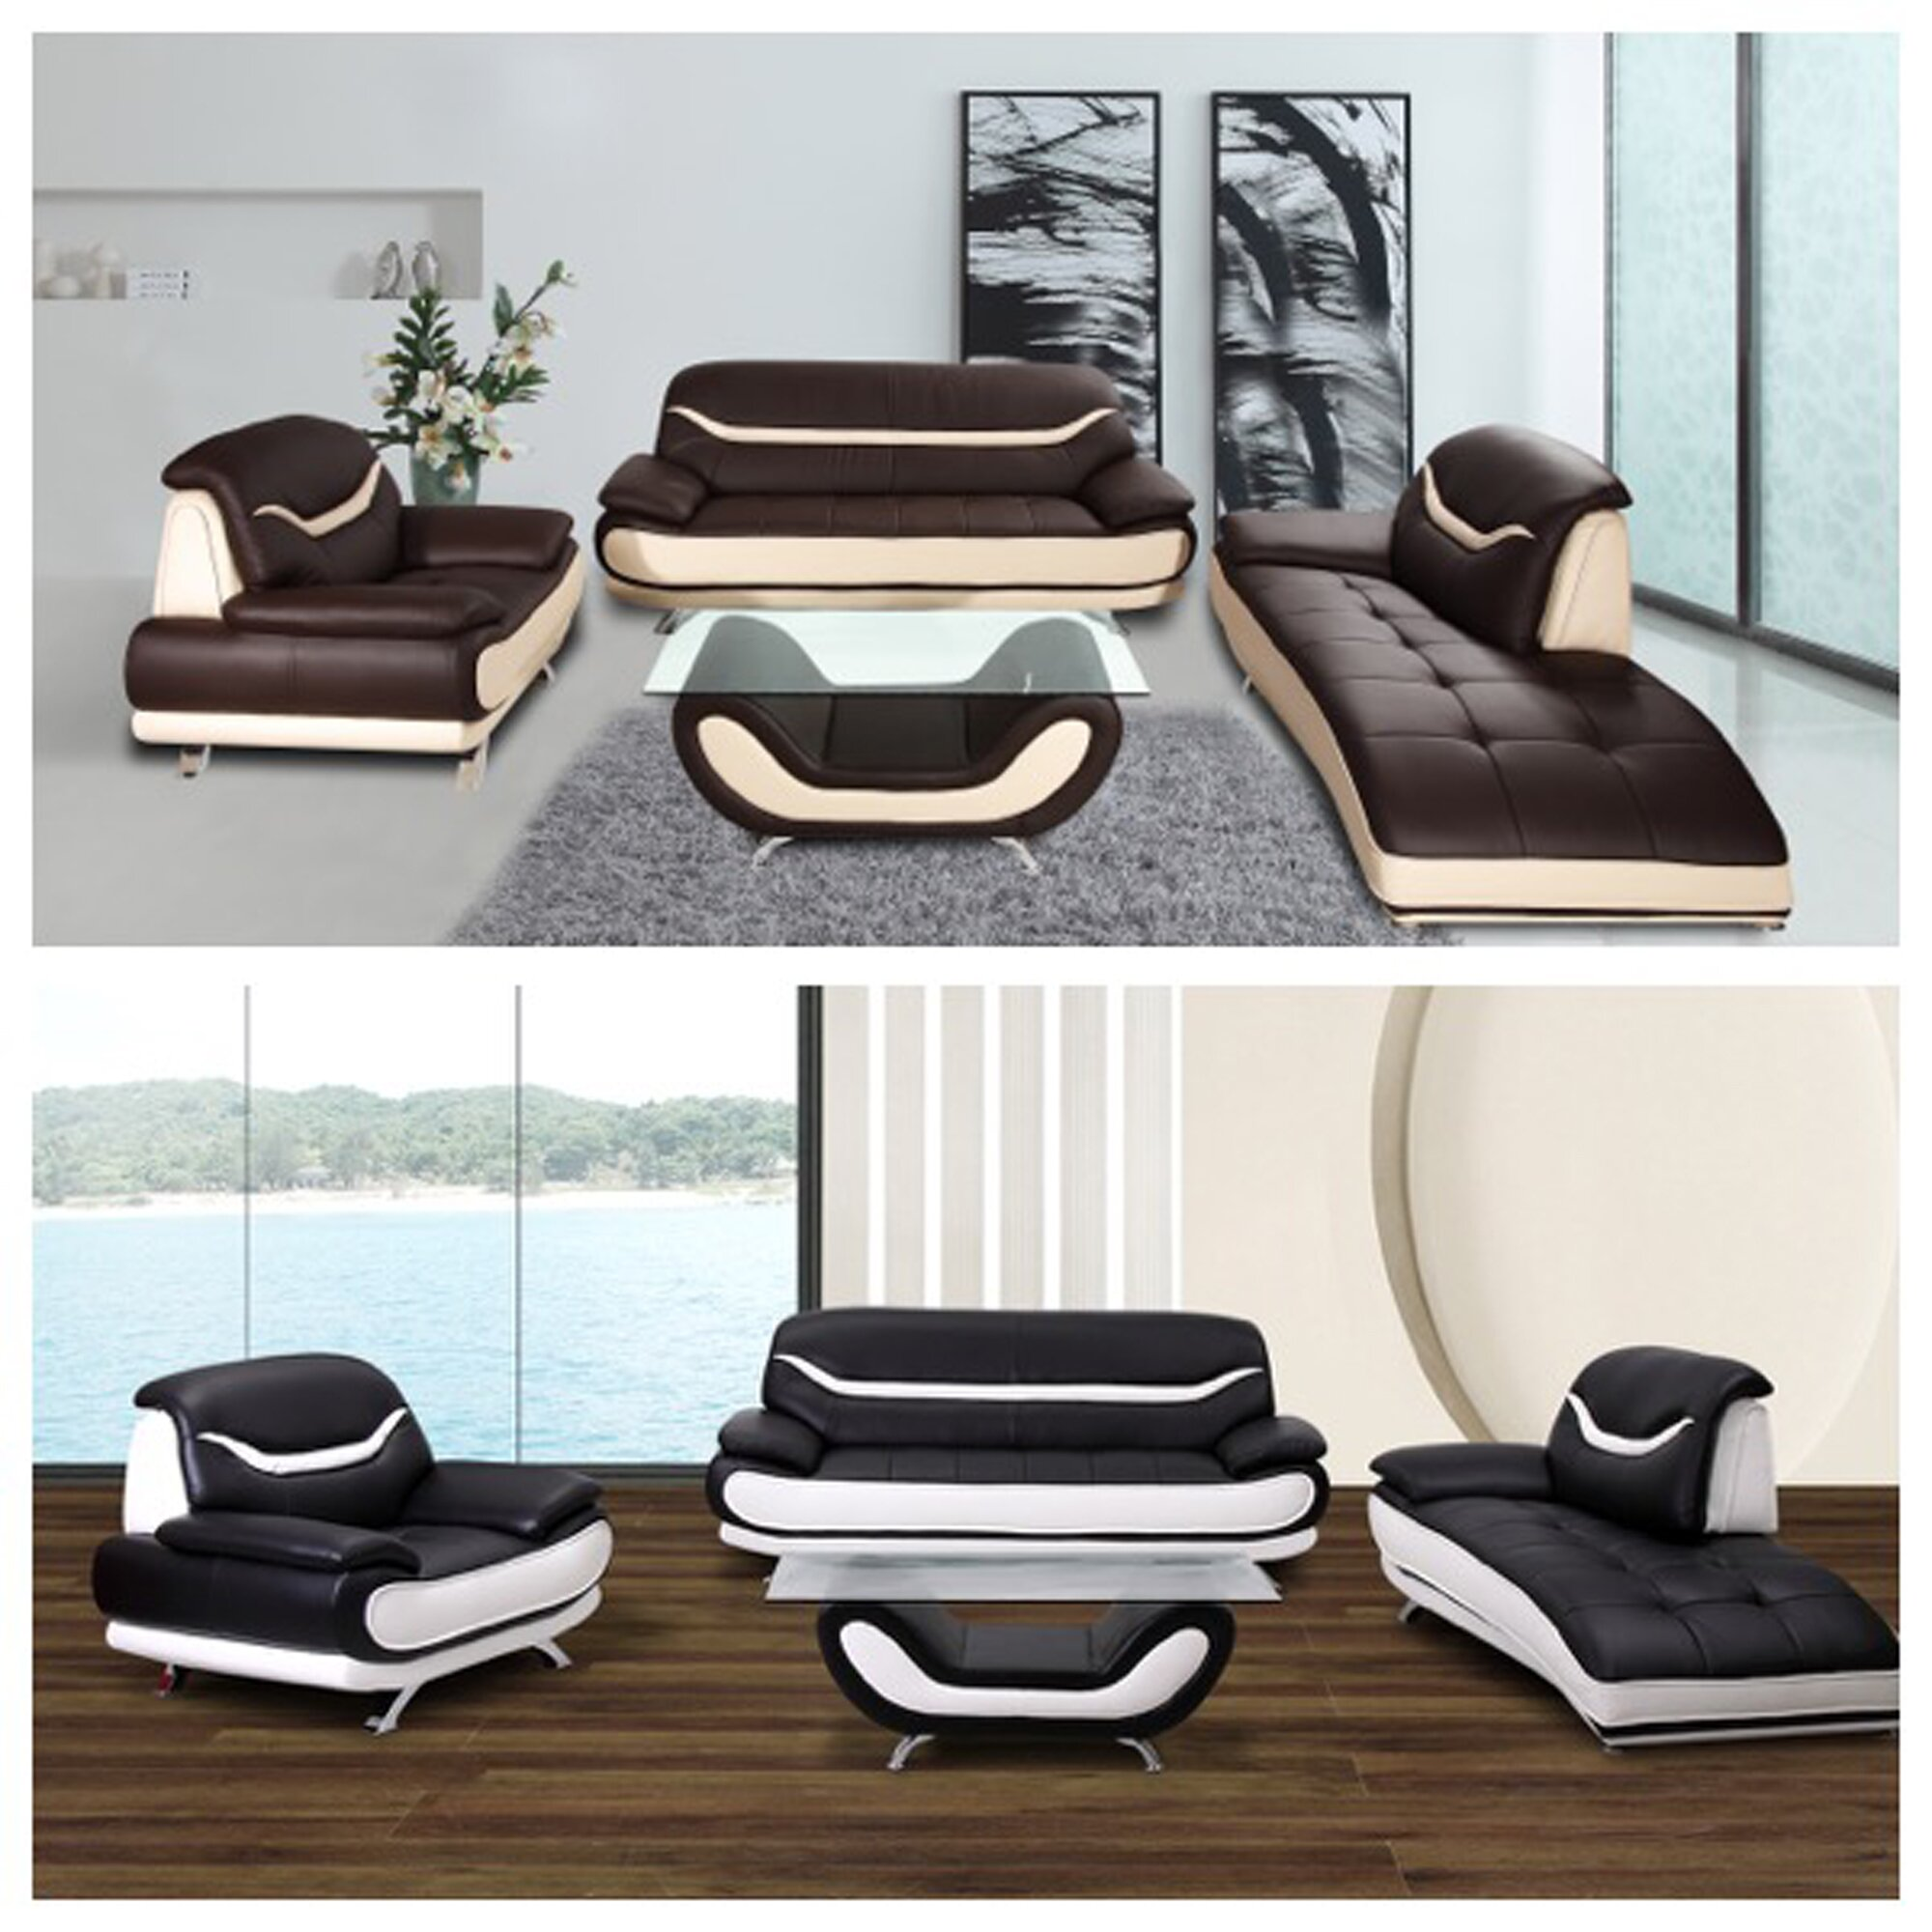 Sofa Set Style Modern Leather Sofa New Style Set: Living In Style Monica 3 Piece Faux Leather Modern Living